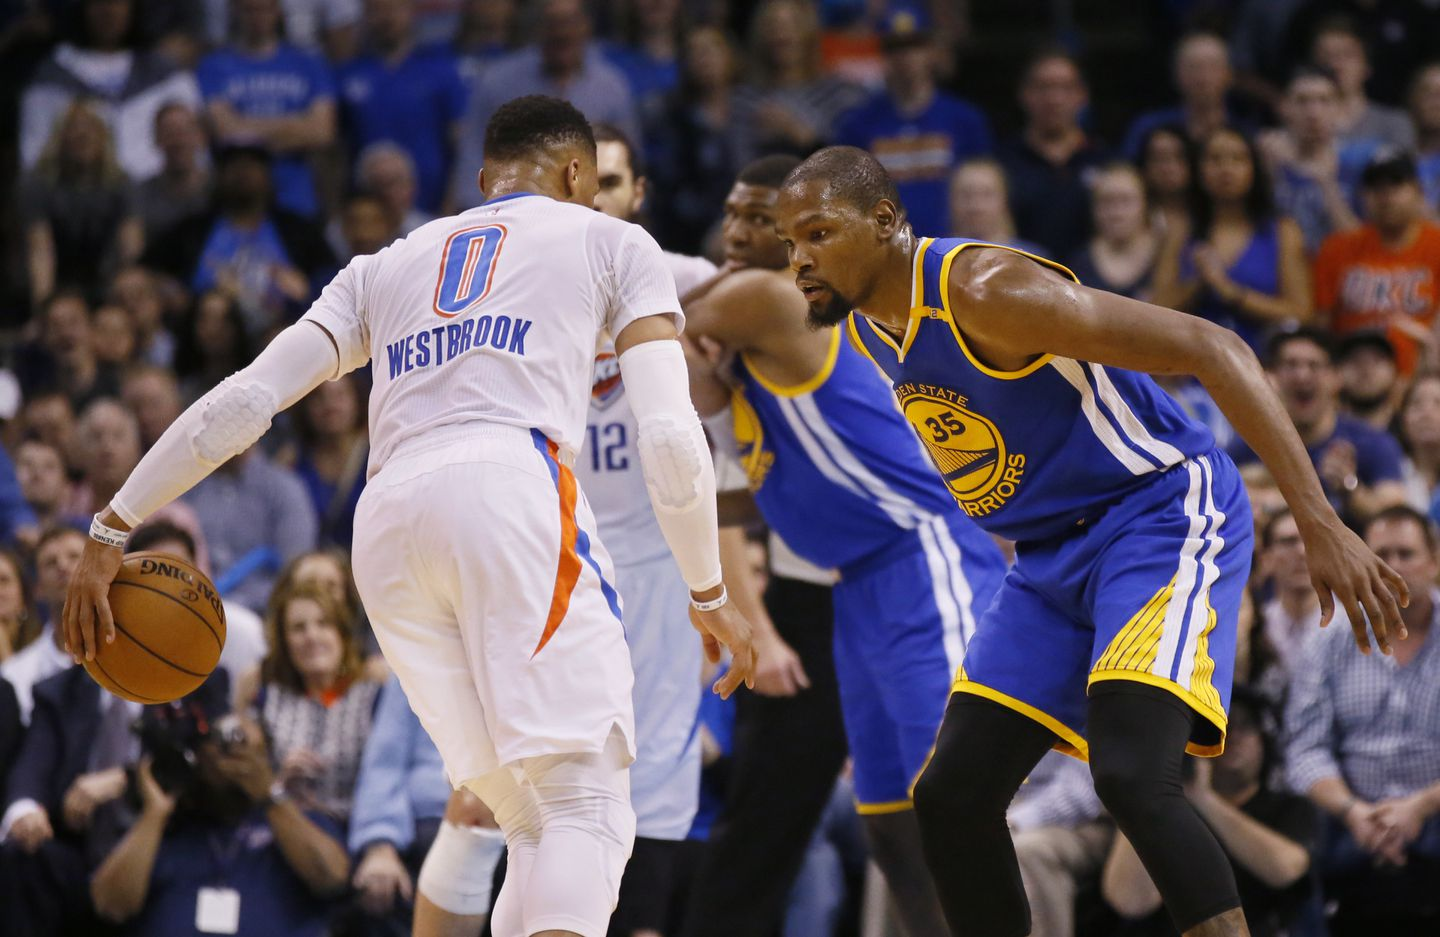 f82182407f80 Warriors forward Kevin Durant defended former Thunder teammate Russell  Westbrook in the first quarter.